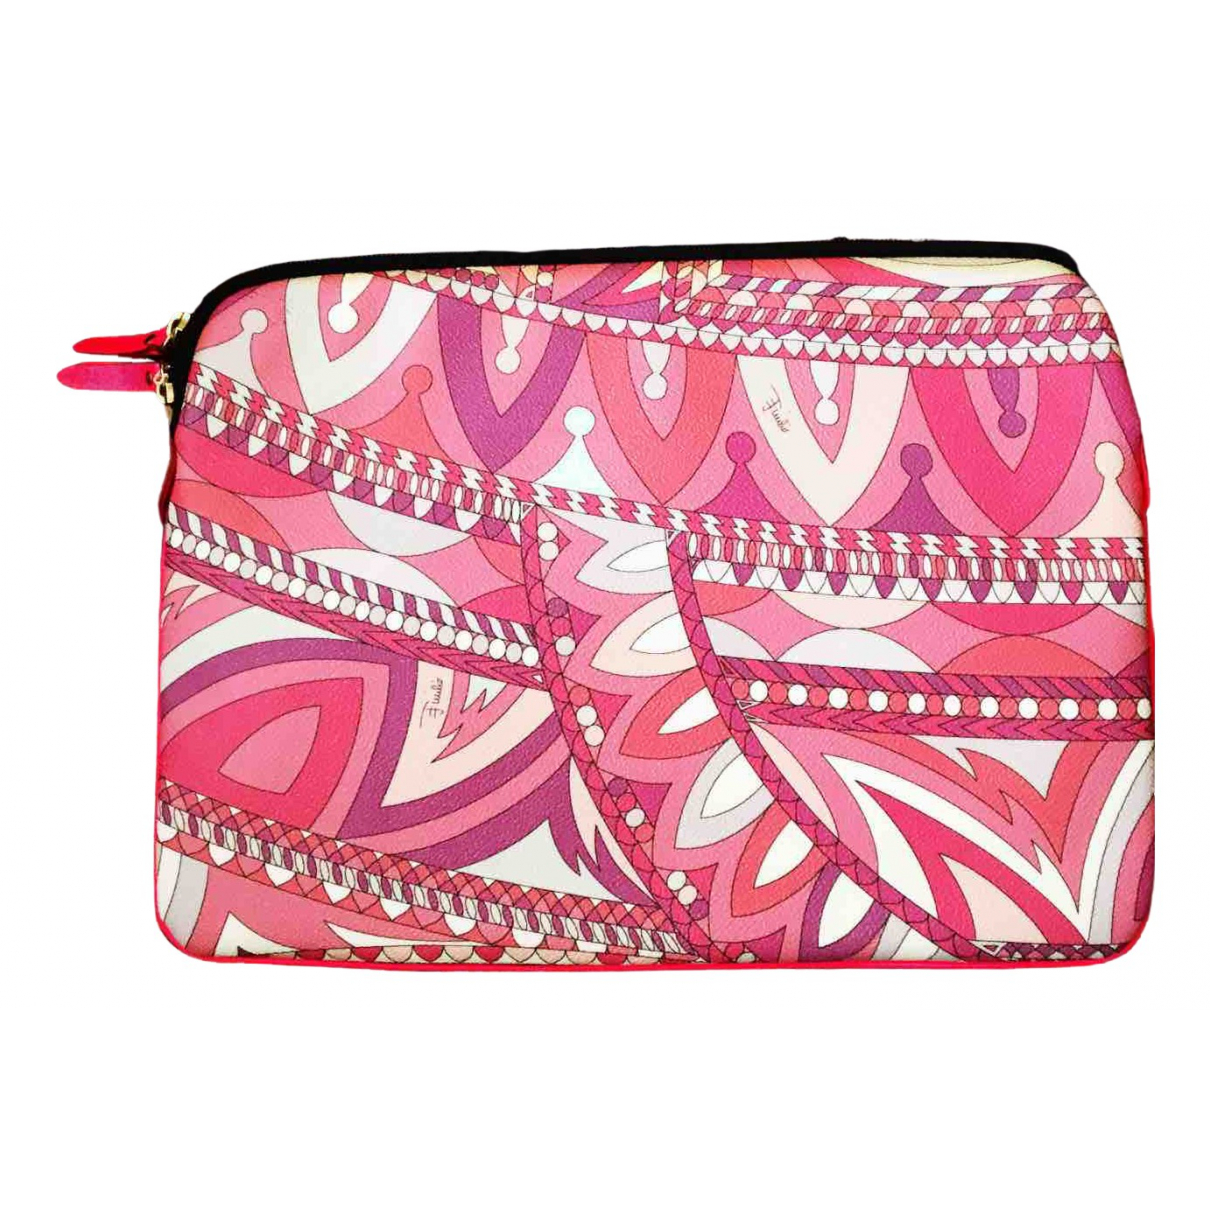 Emilio Pucci N Pink Cloth Purses, wallet & cases for Women N